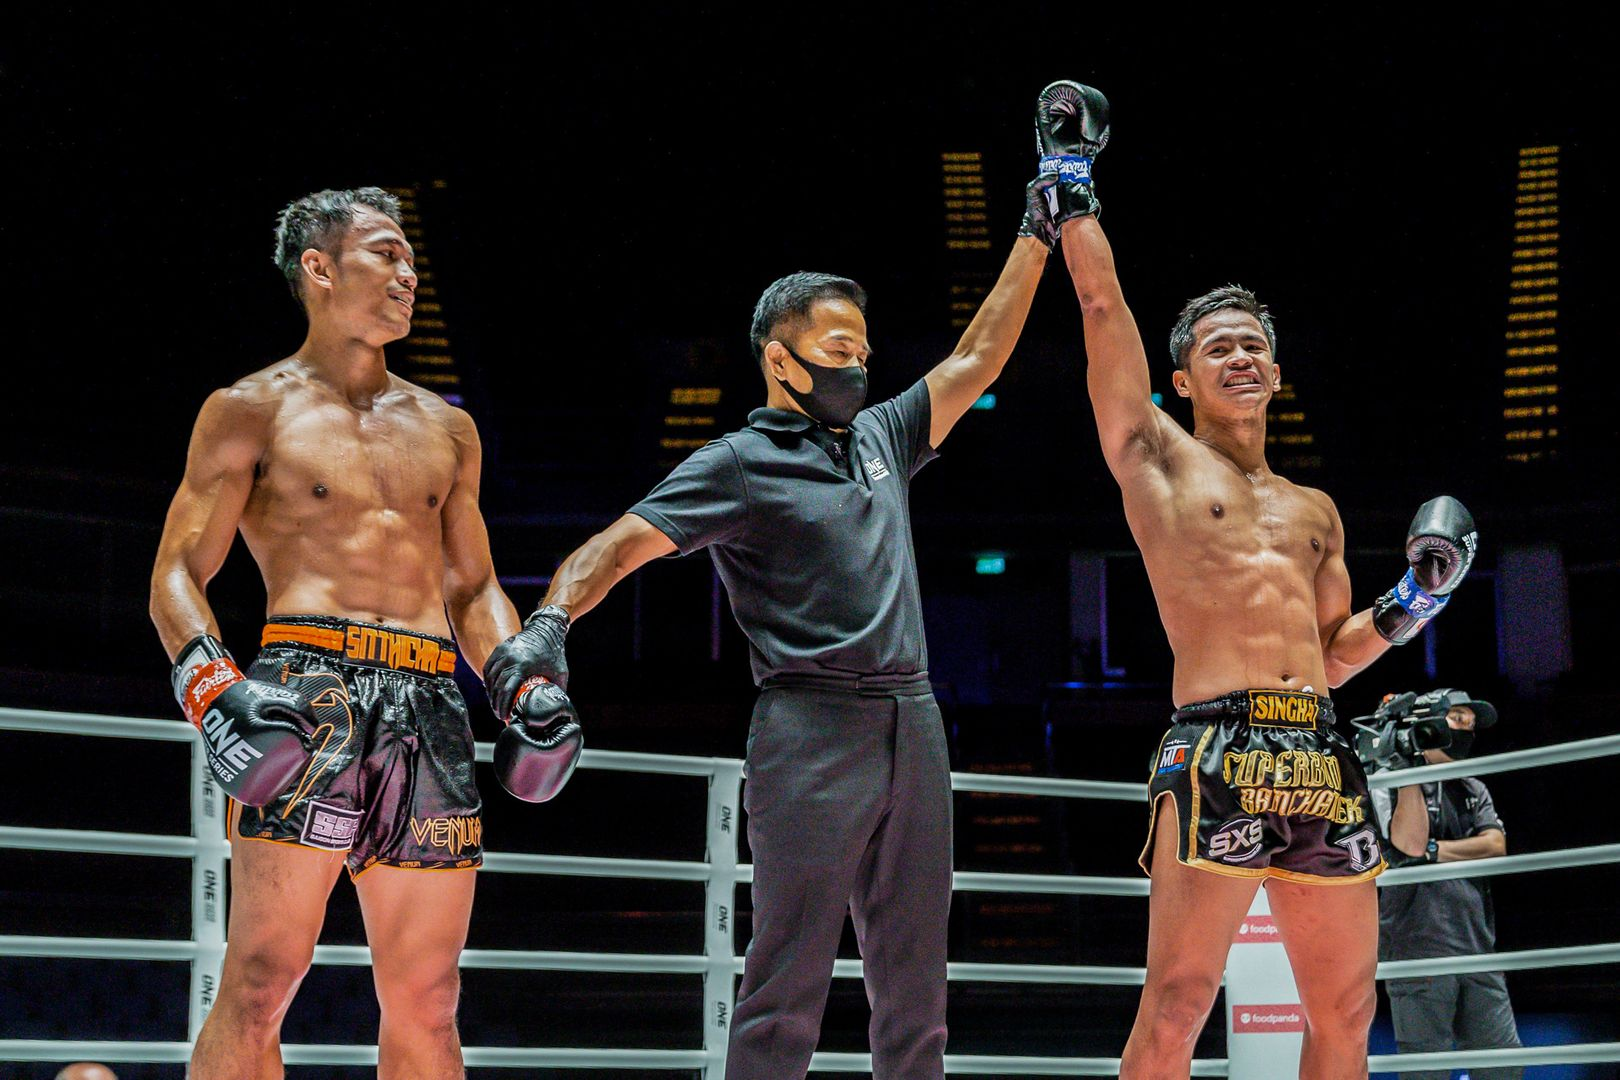 Thai boxer Superbon defeats Sitthichai Sitsongpeenong in their trilogy!